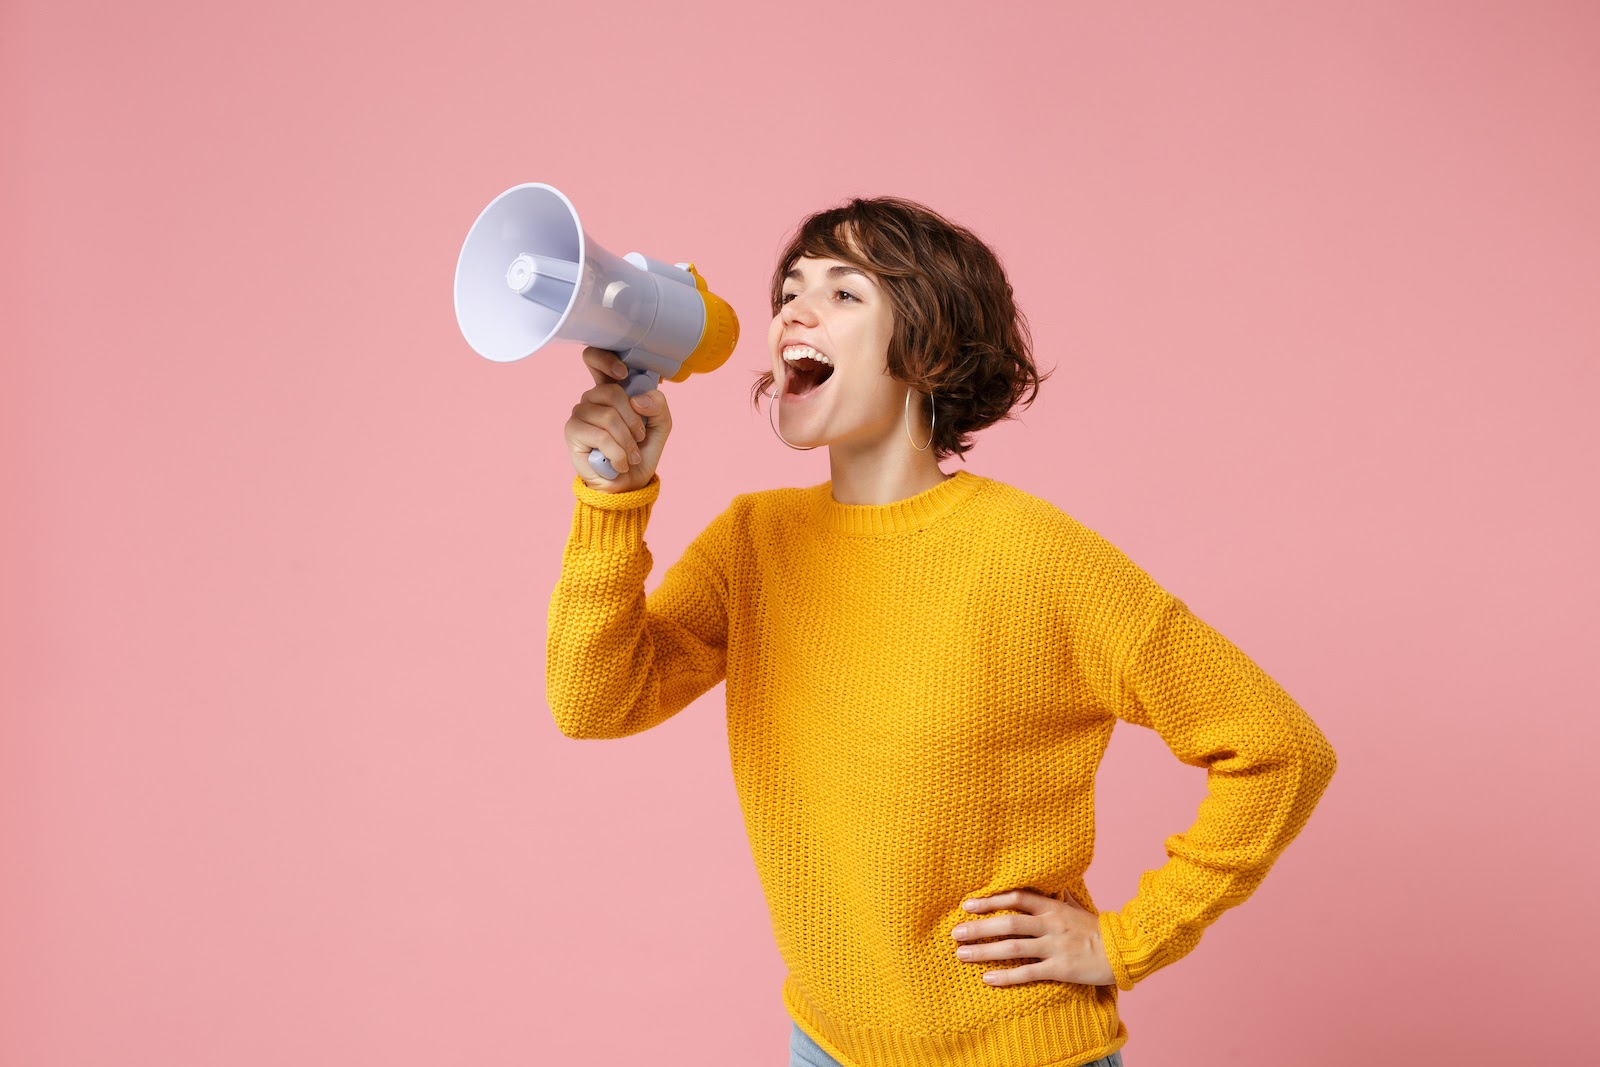 A woman holds a megaphone to symbolize event marketing initiatives